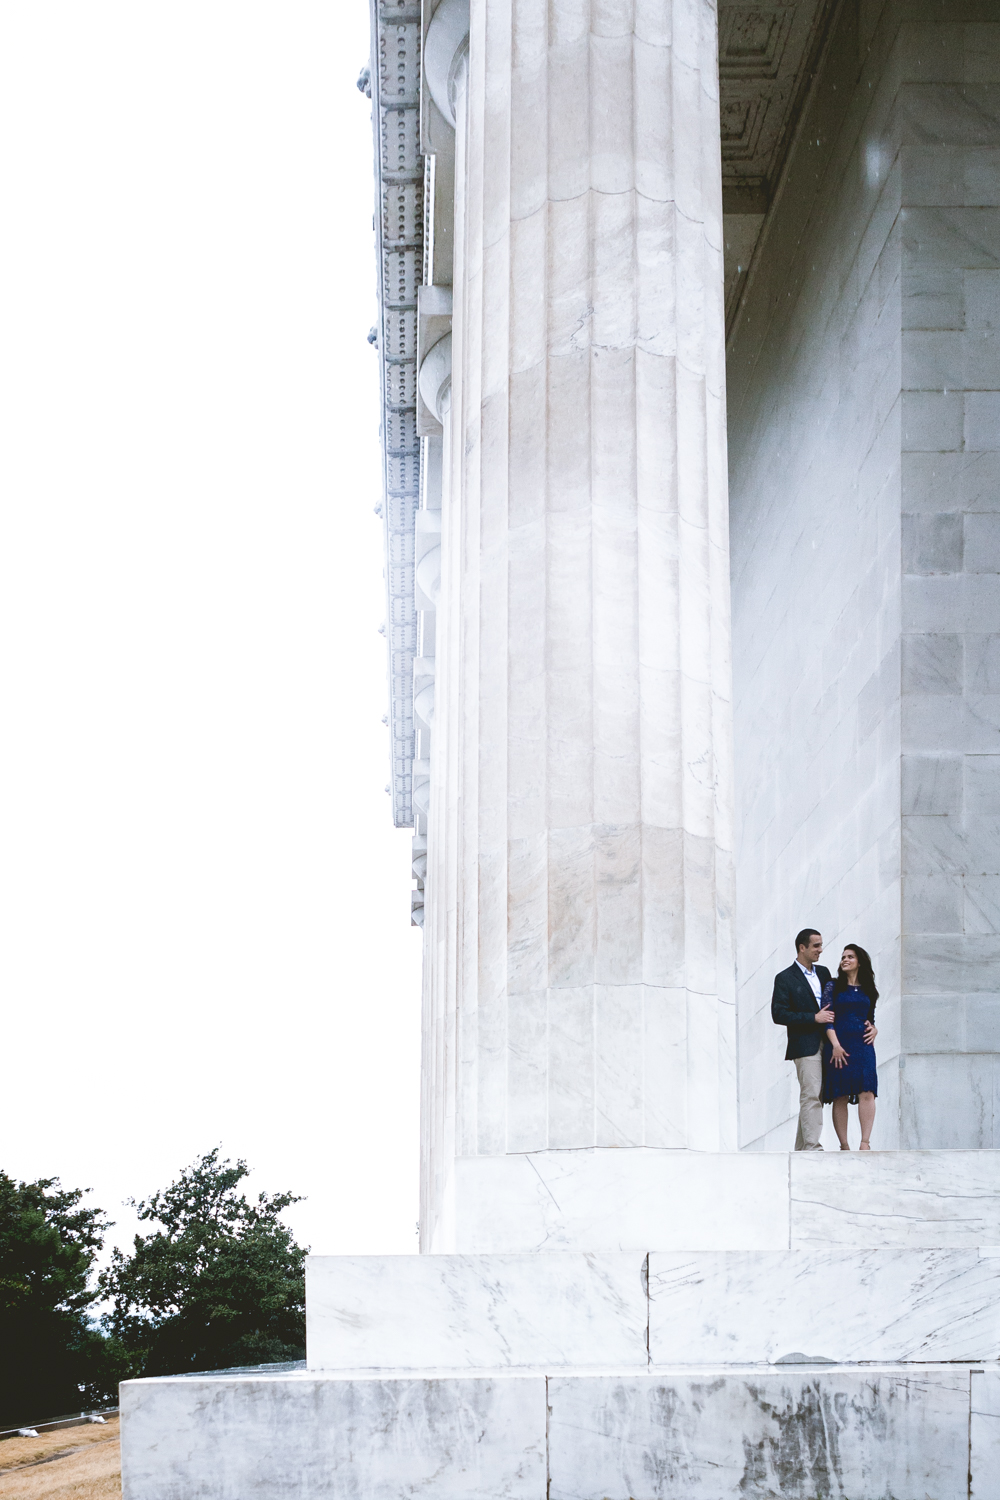 Lincoln Memorial Engagment Photography (2 of 11)